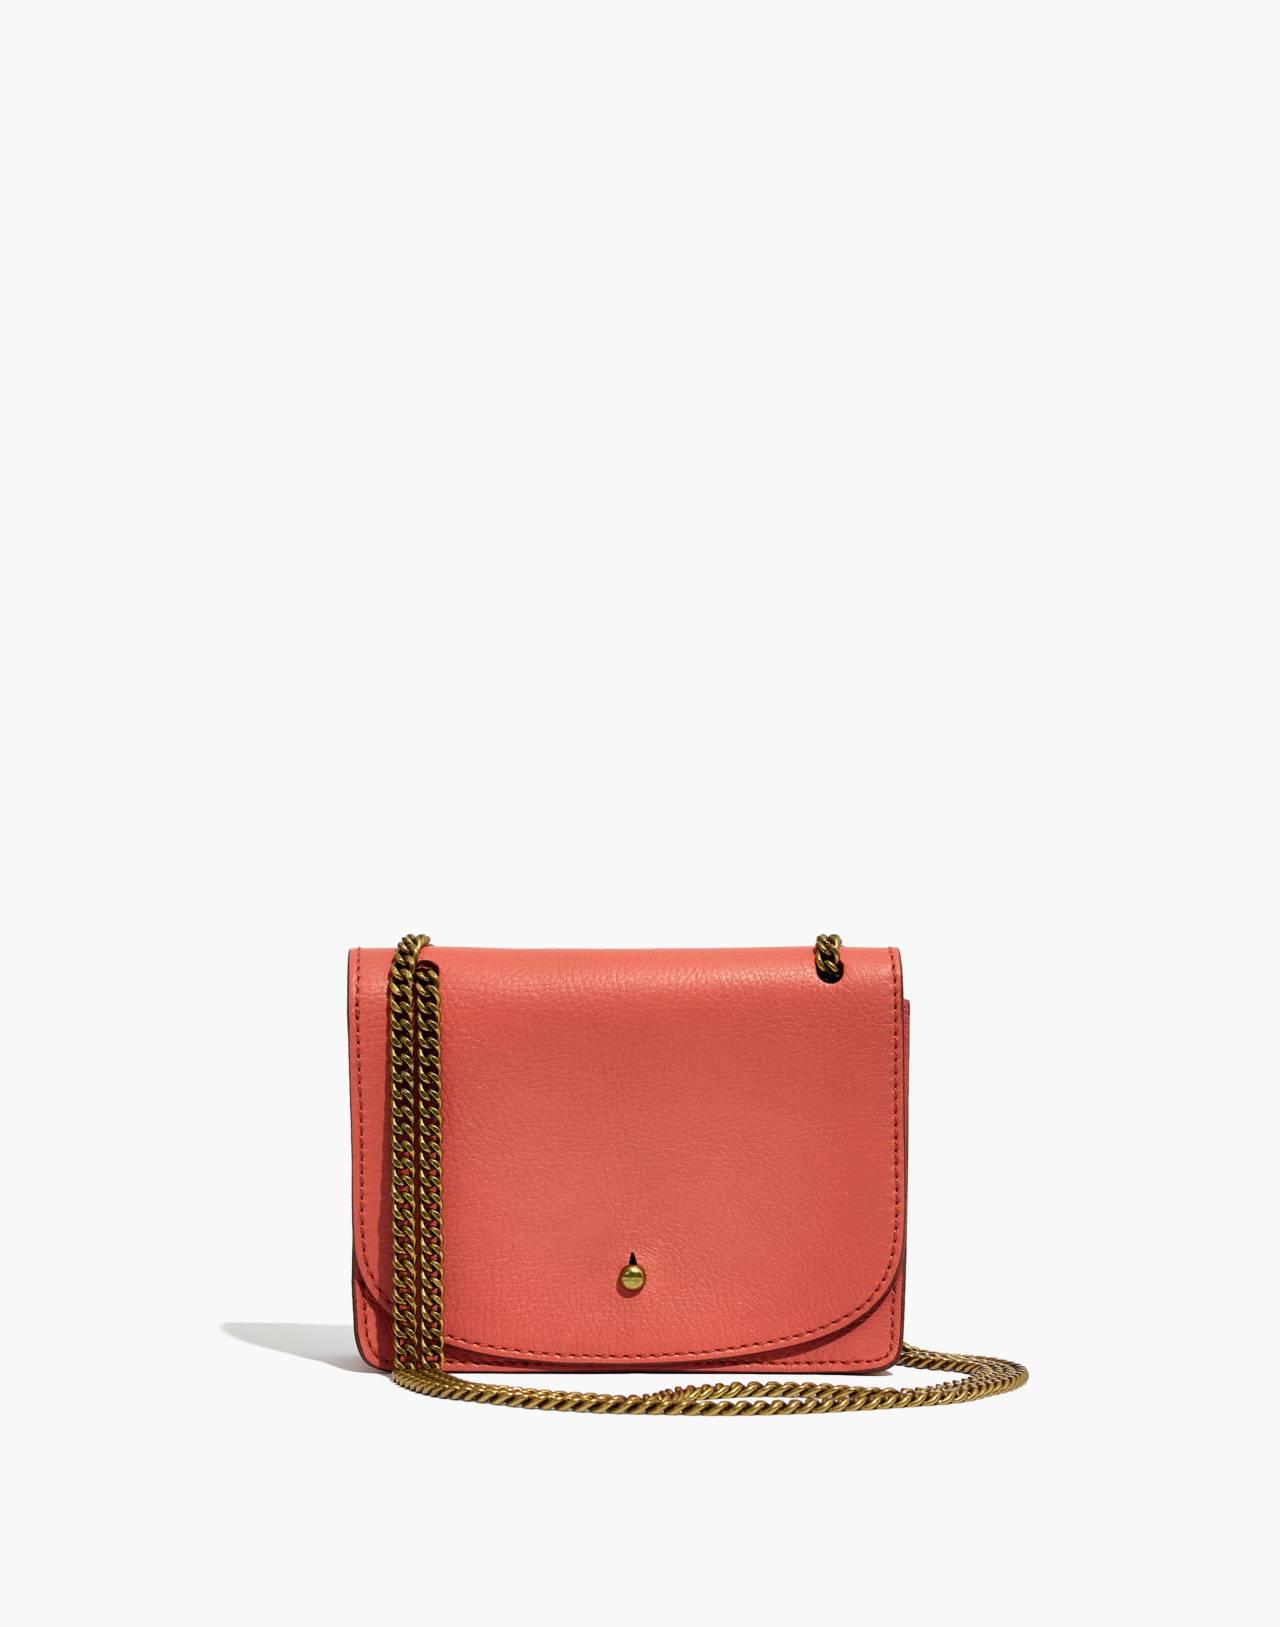 The Chain Crossbody Bag in spiced rose image 1